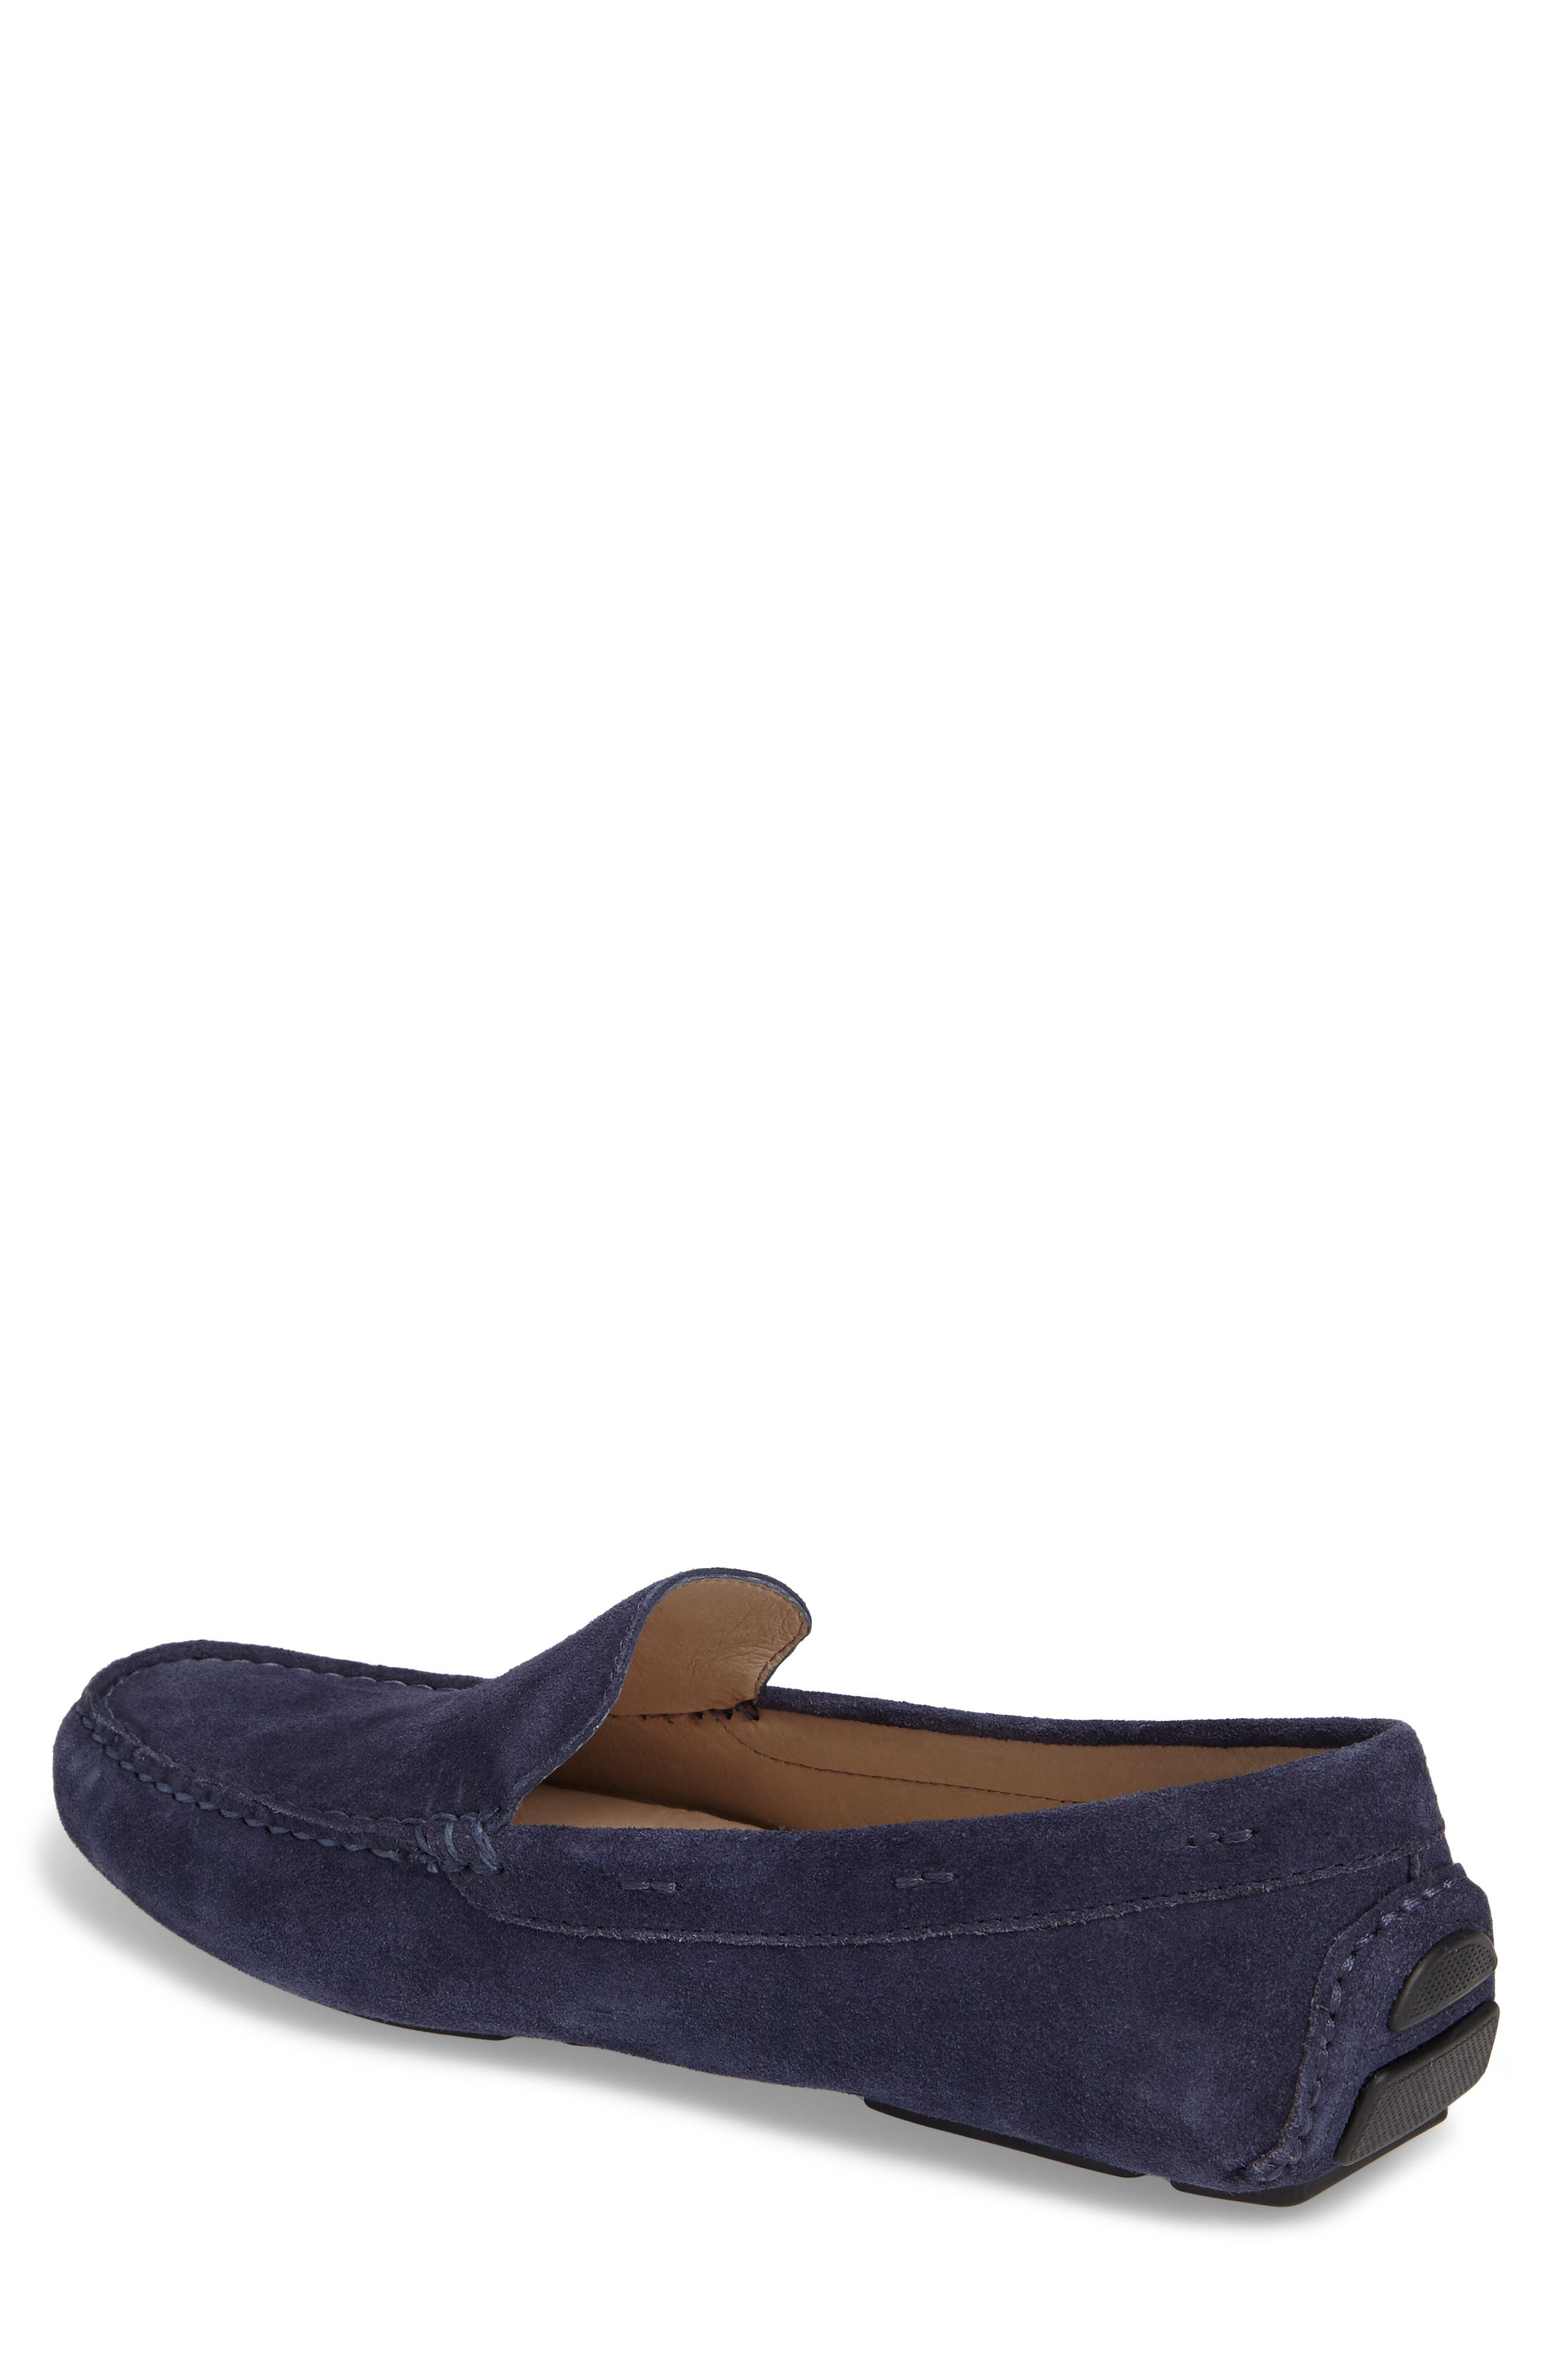 Pagota Driving Loafer,                             Alternate thumbnail 9, color,